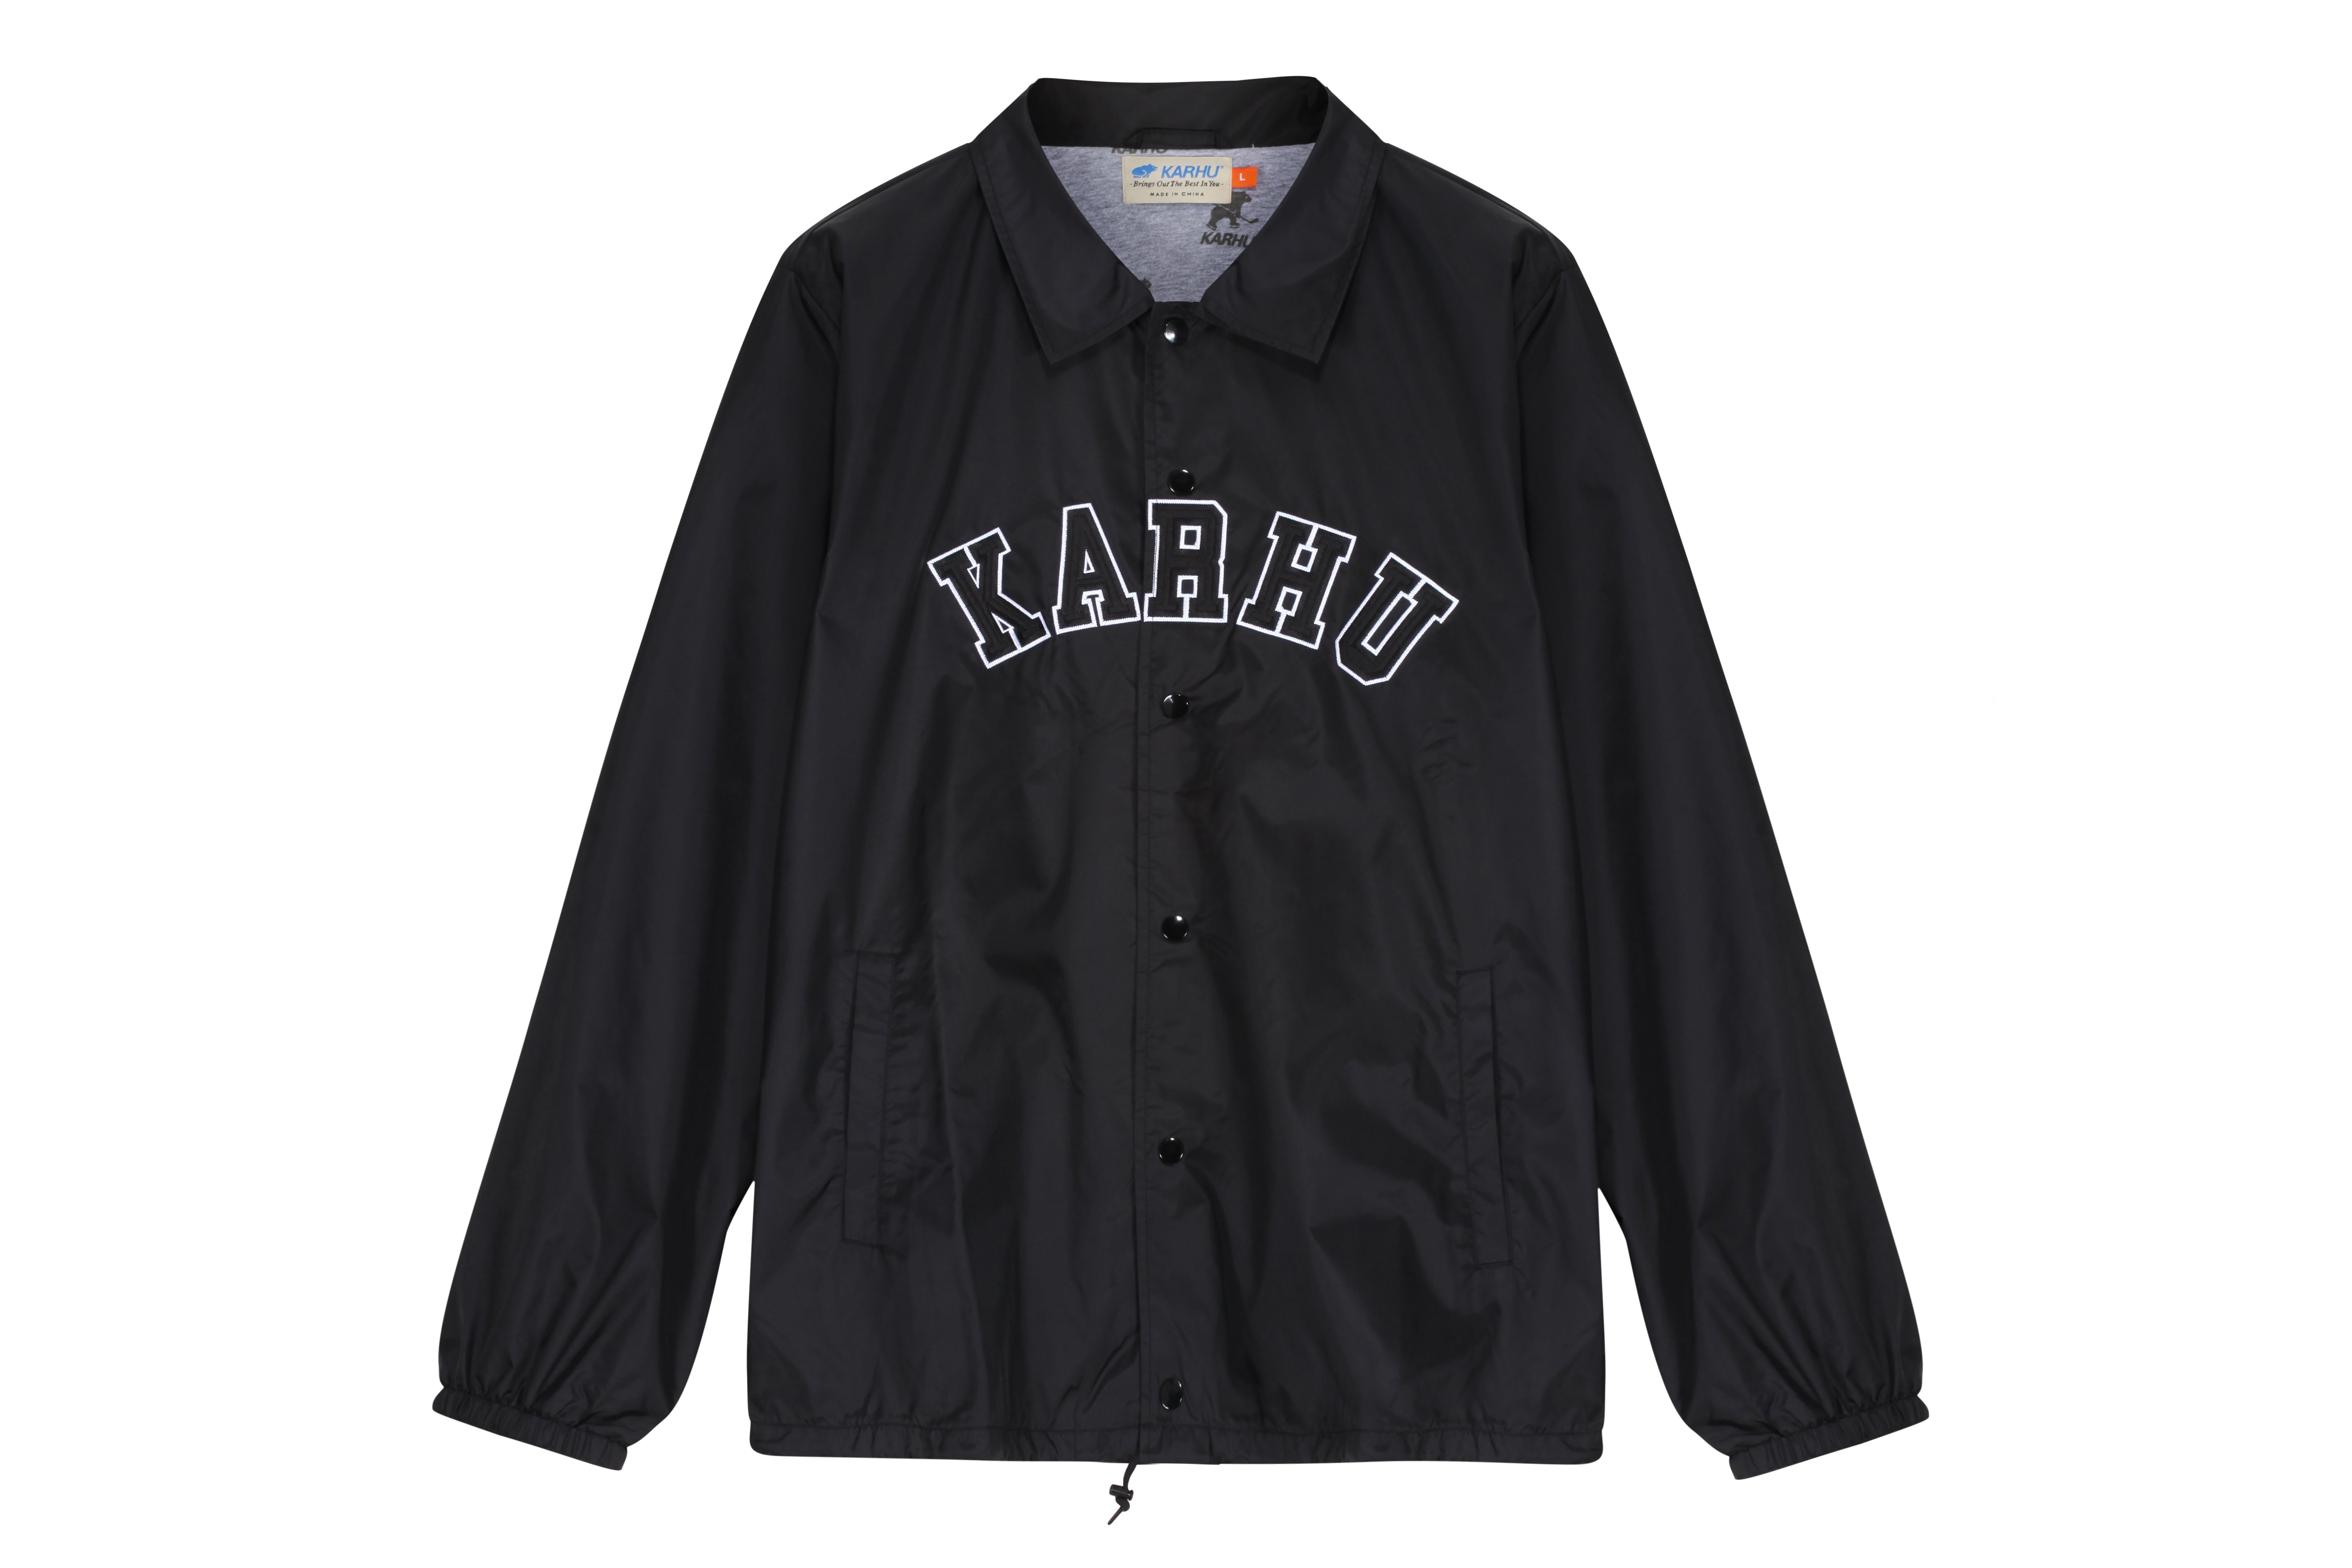 Karhu Worldwide Coach Jacket